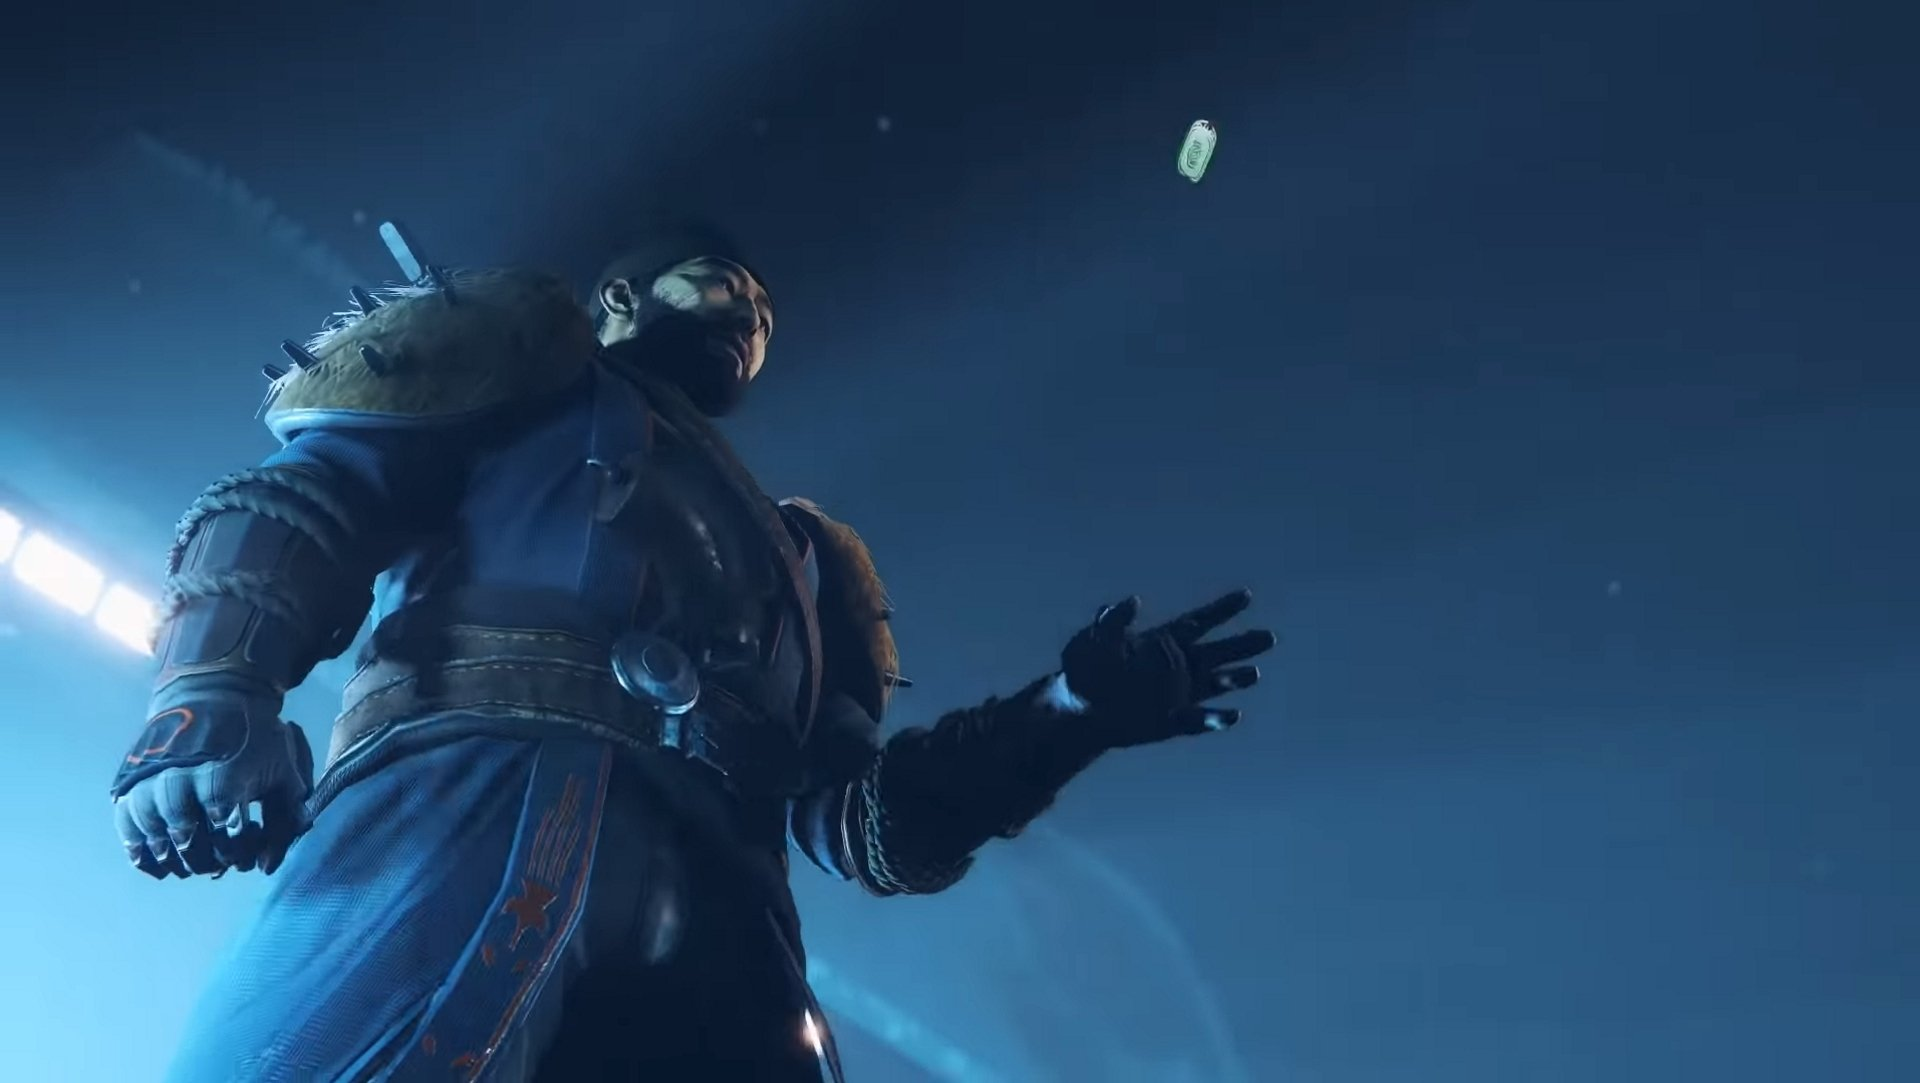 How to get Thorn in Destiny 2